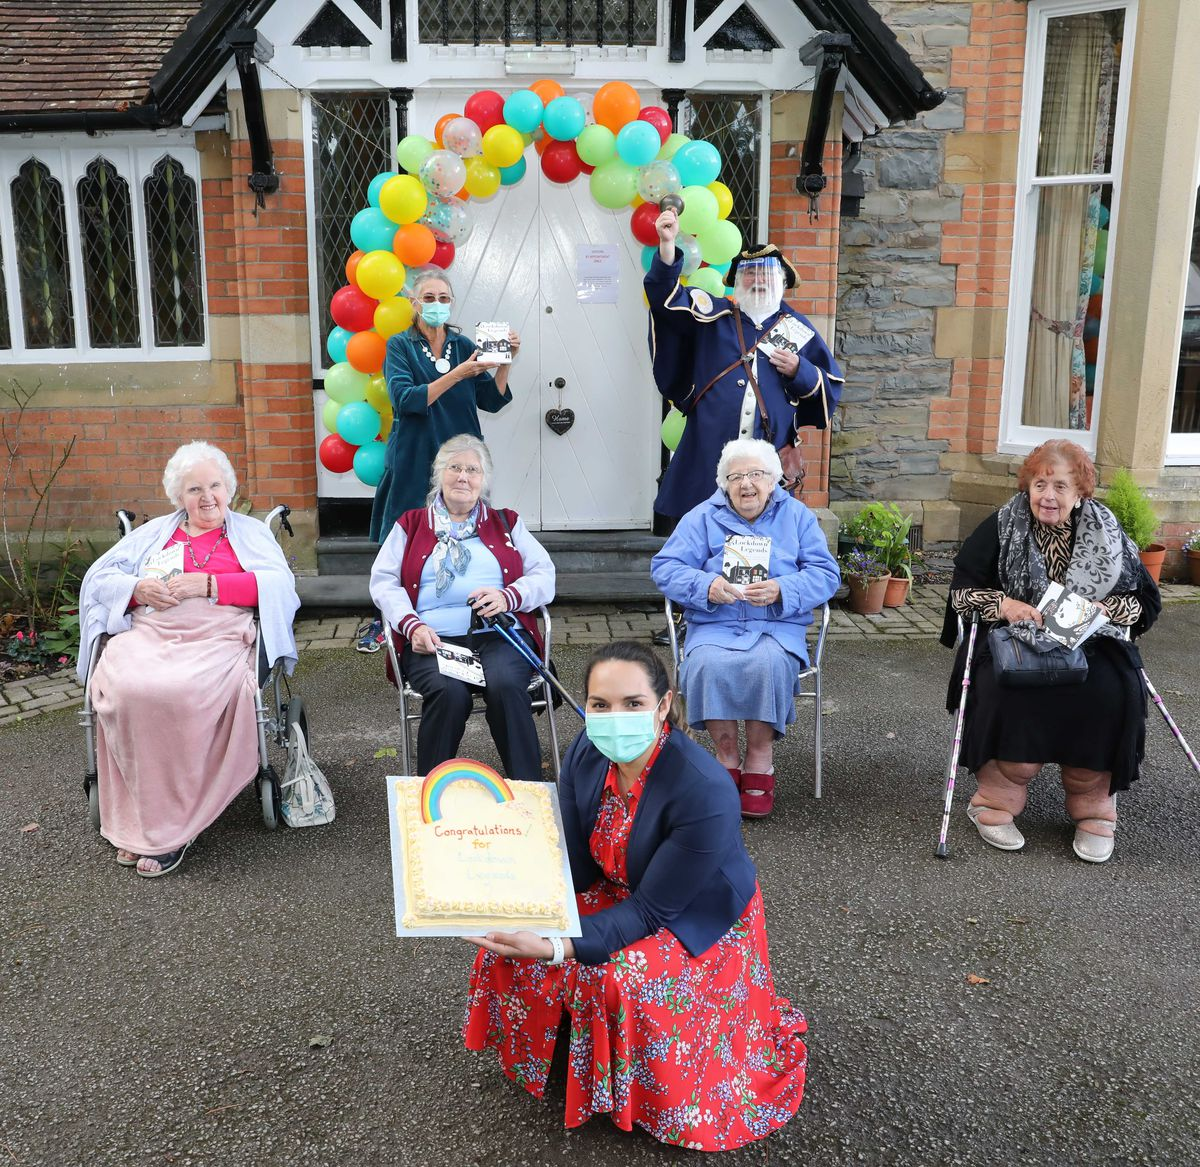 Pictured at the back are storyteller Fiona Collins and Town Crier  Austin 'Chem' Cheminais  with  Joan Fell 96, Jill Lidgit 85, Ena Strange 99, and Yola Roberts 87 and owner Bethan Mascarenhas with the celebration cake